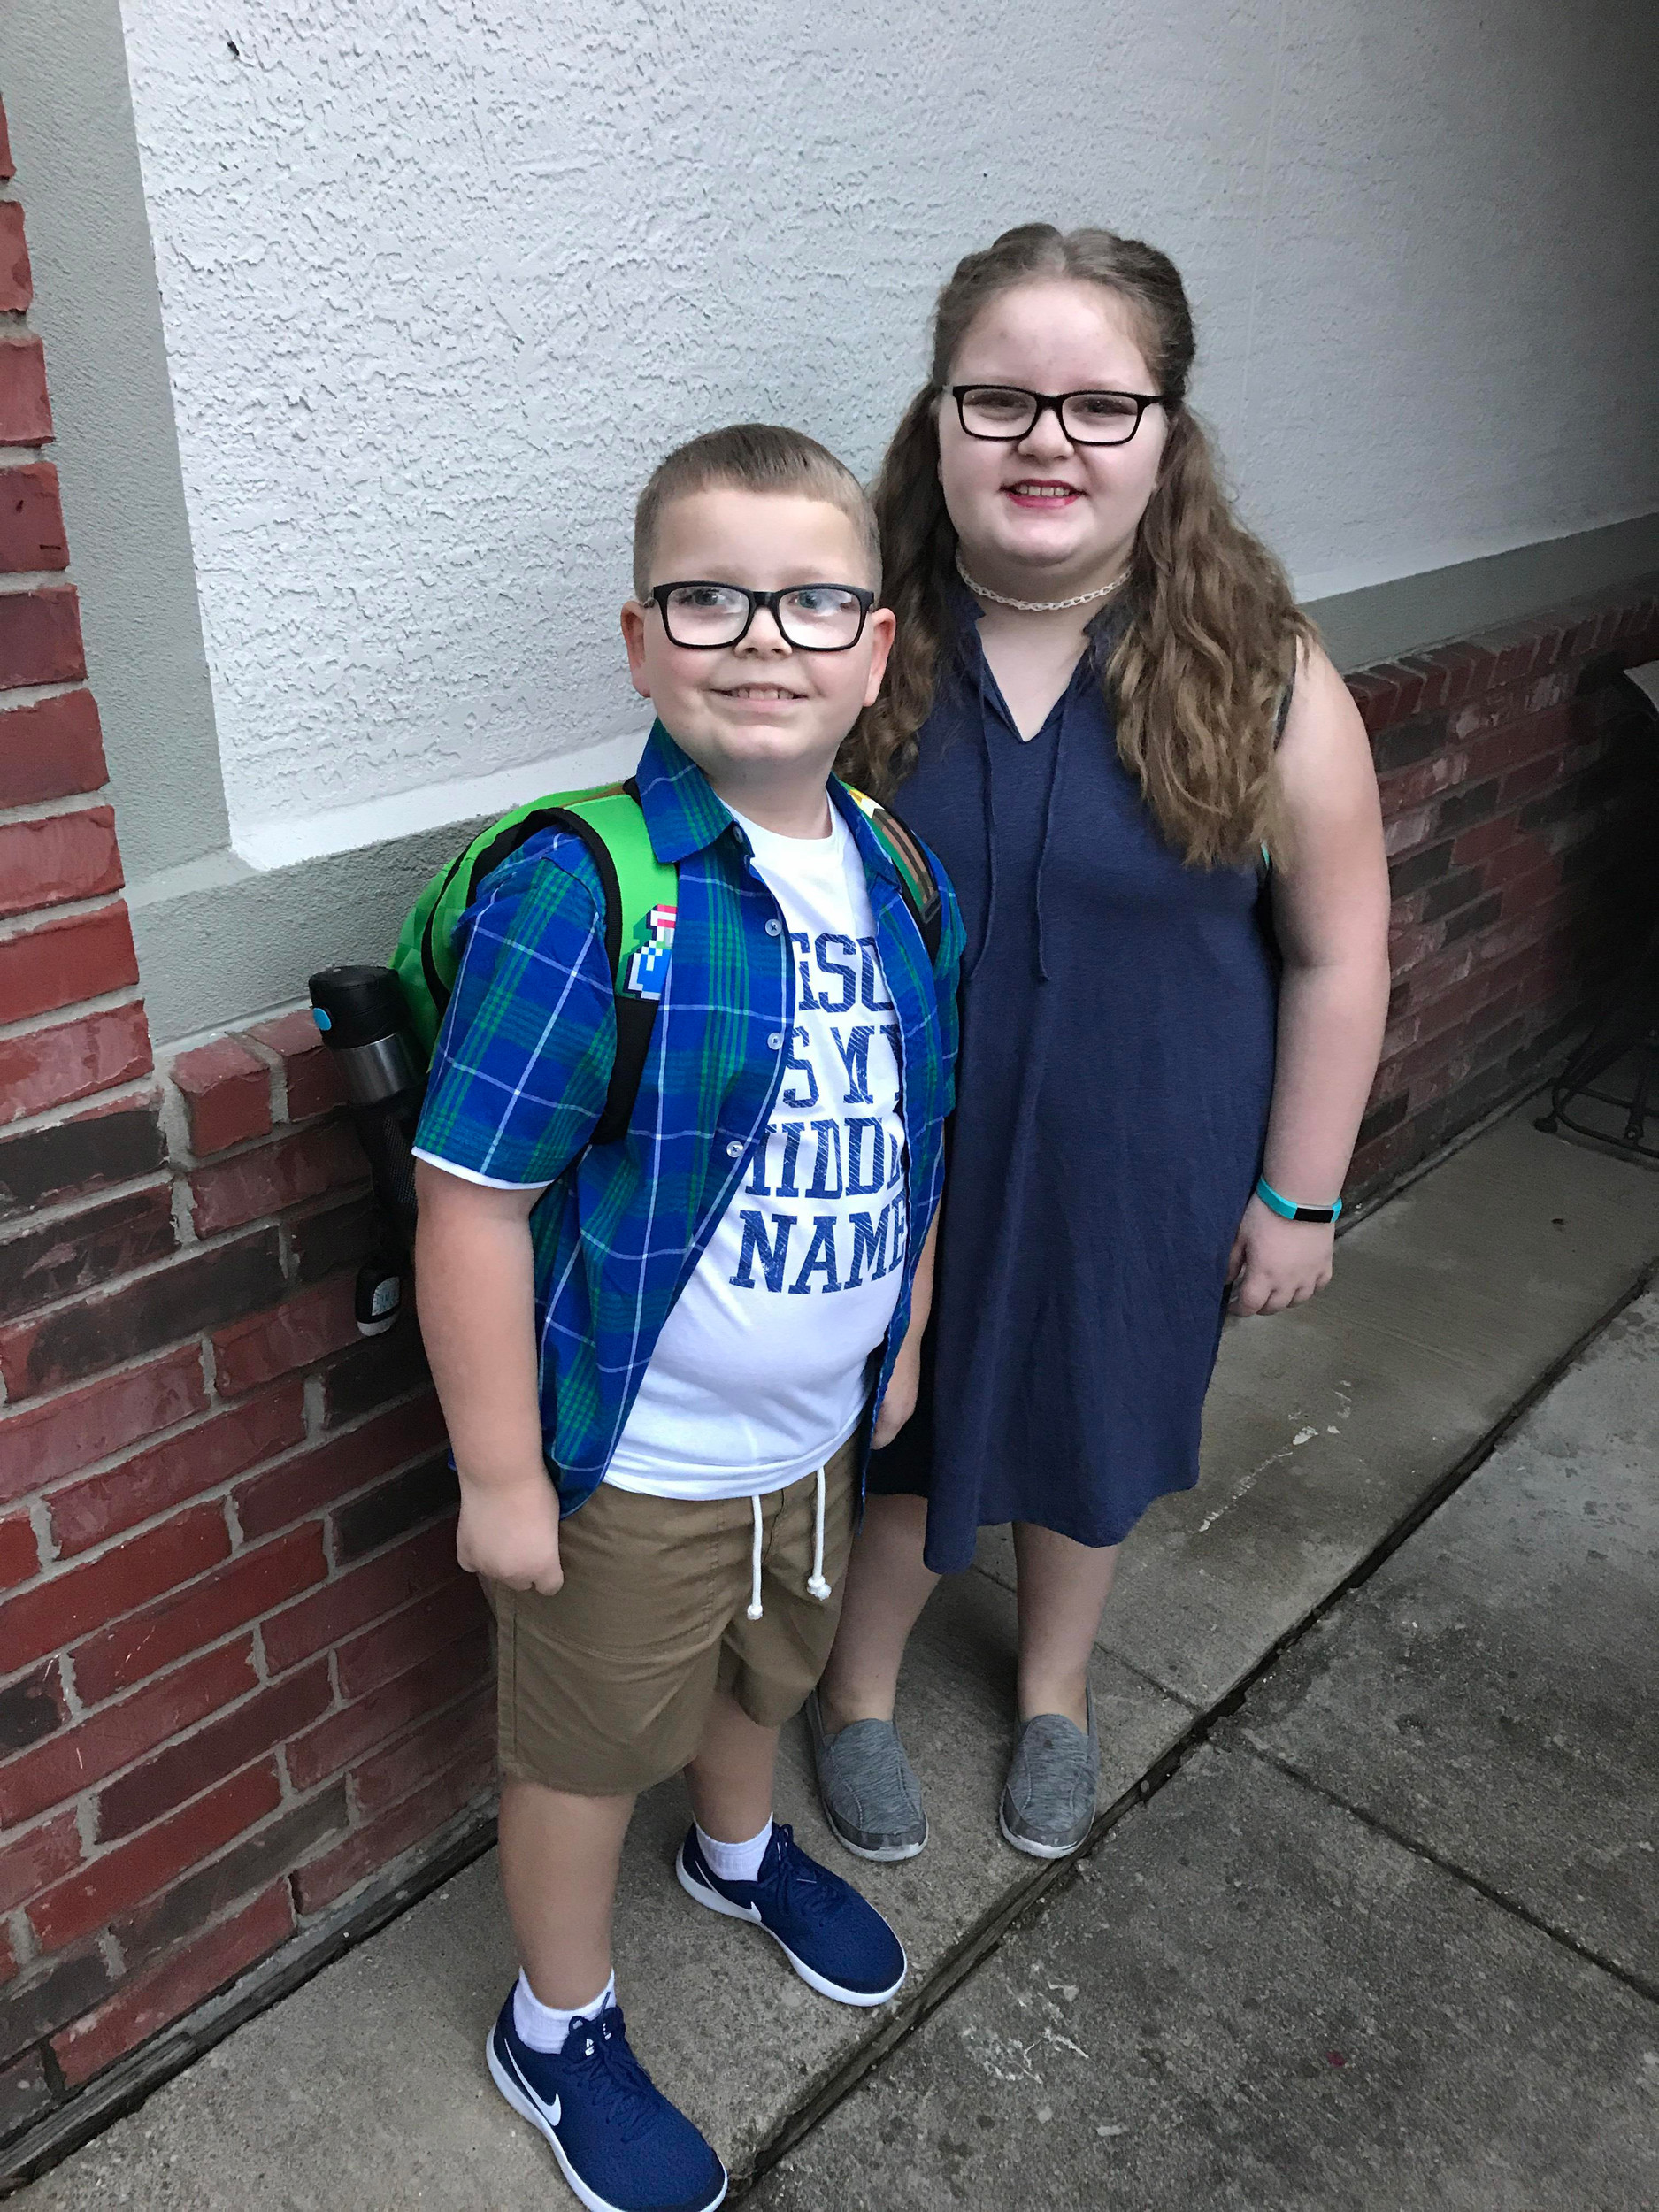 Parker West, 2nd grade and Madison West, 5th grade Naumann Elementary